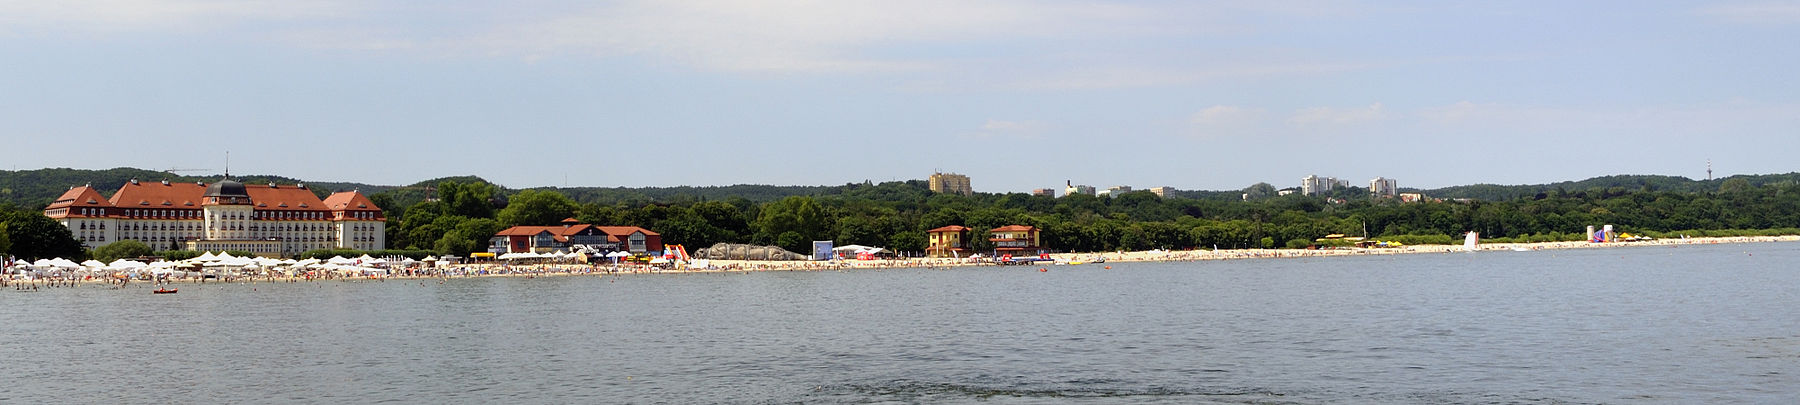 Beach of Sopot.jpg